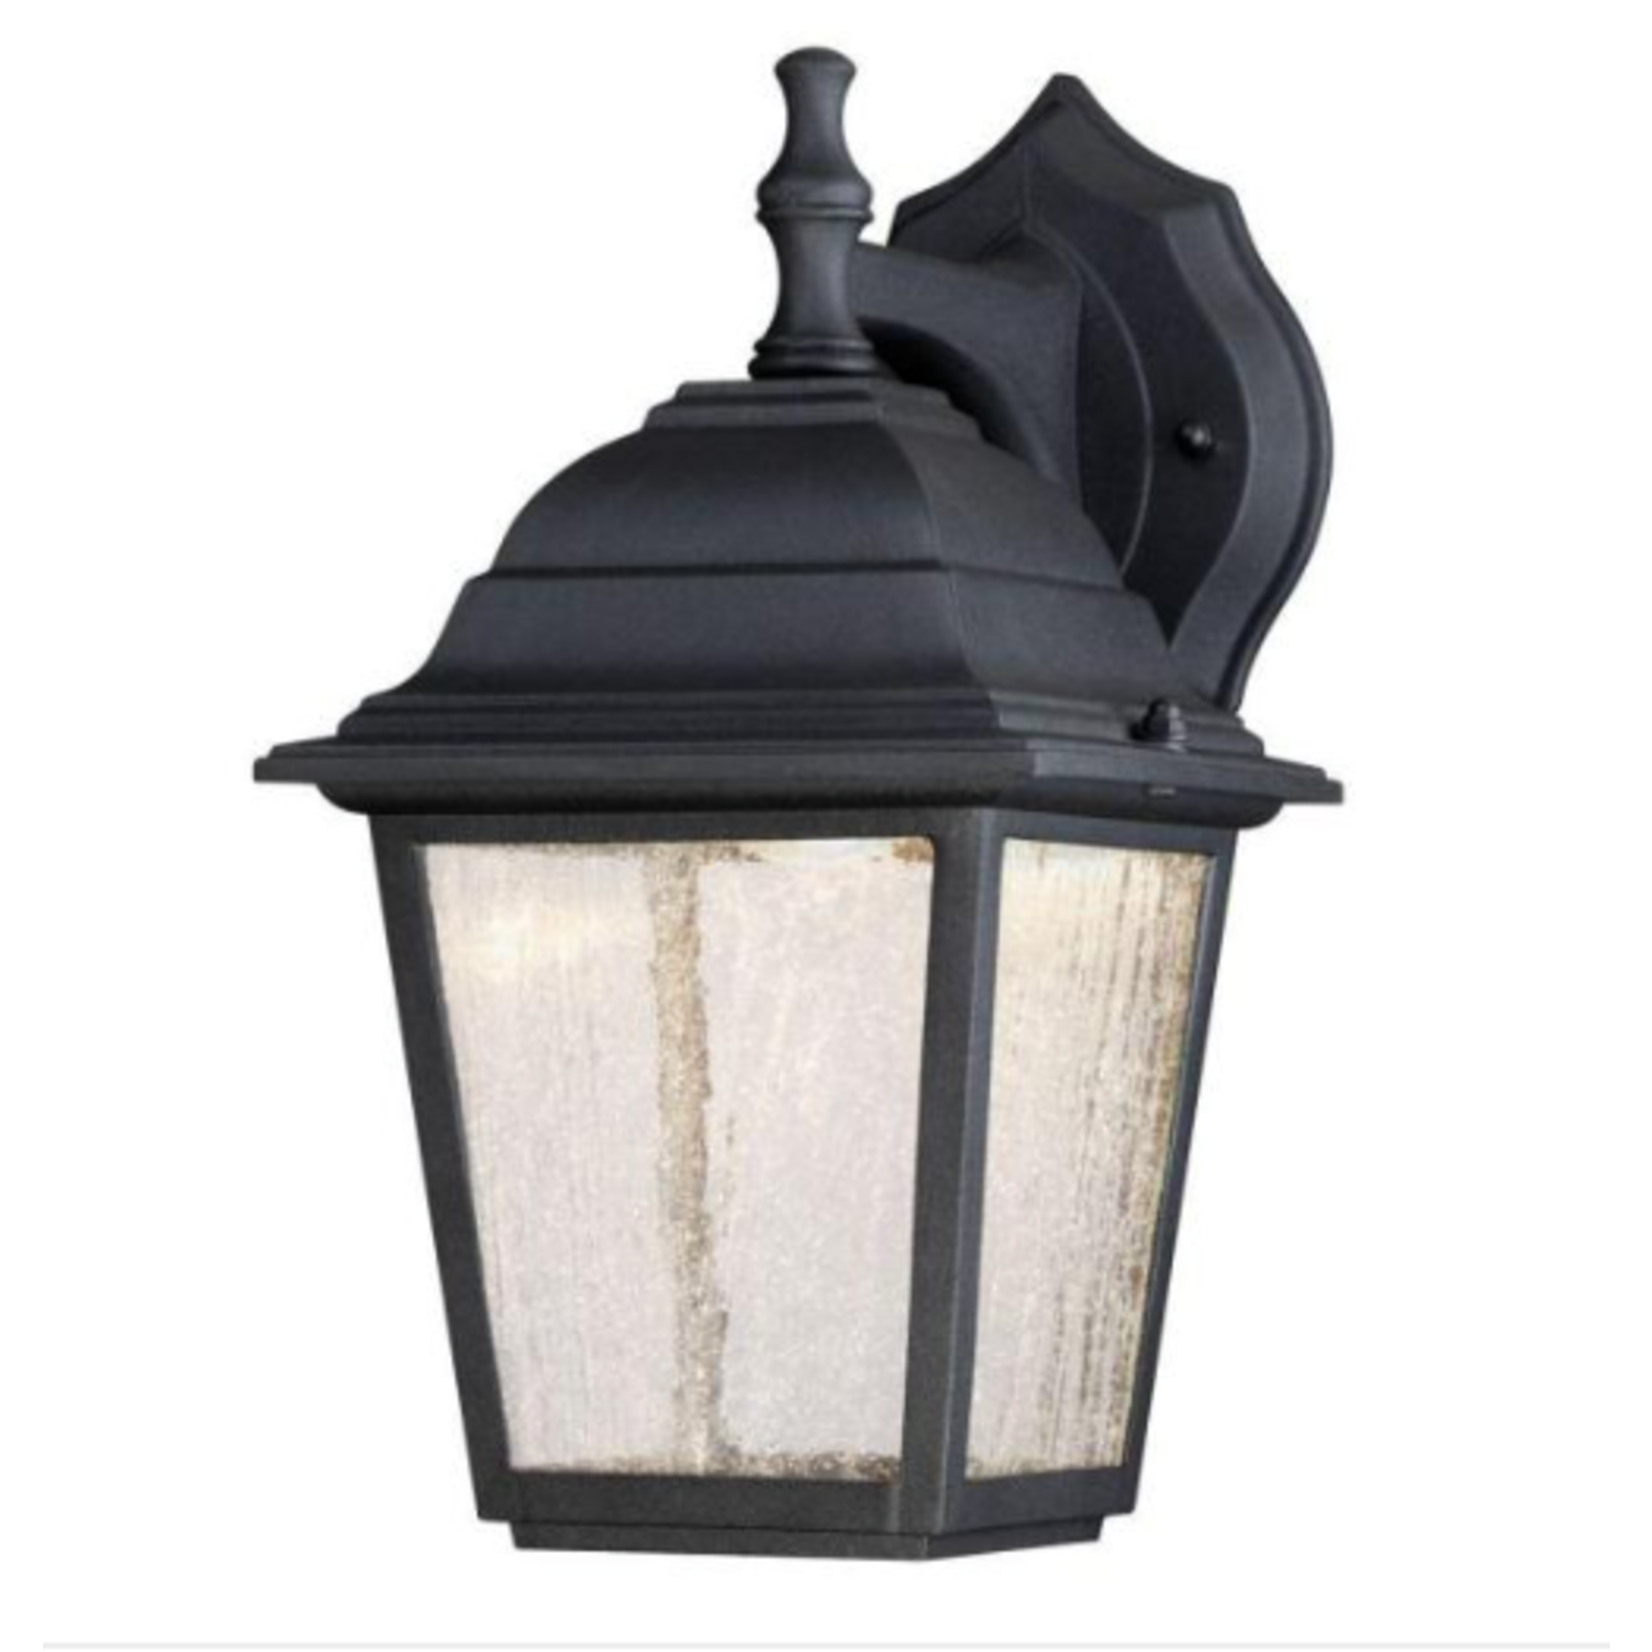 10361 Westinghouse Black Outdoor Wall Lantern Sconce